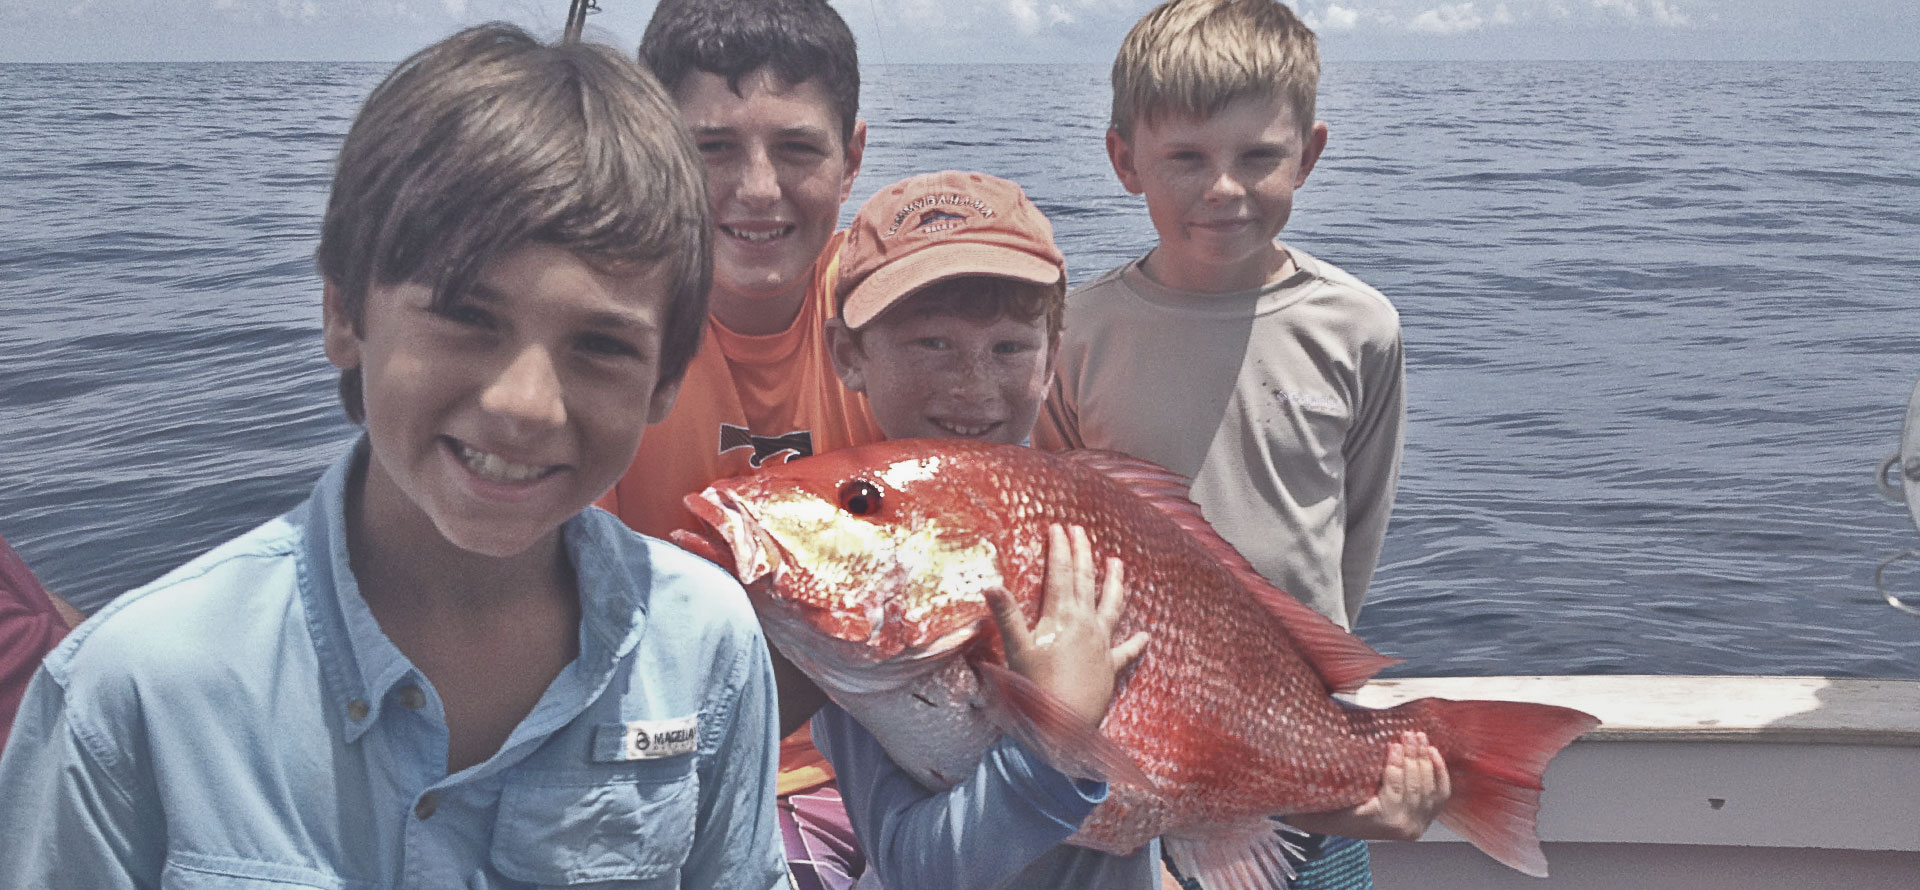 j-hook-fishing-charters-st-augustine-florida-kid-friendly-activity-vacation